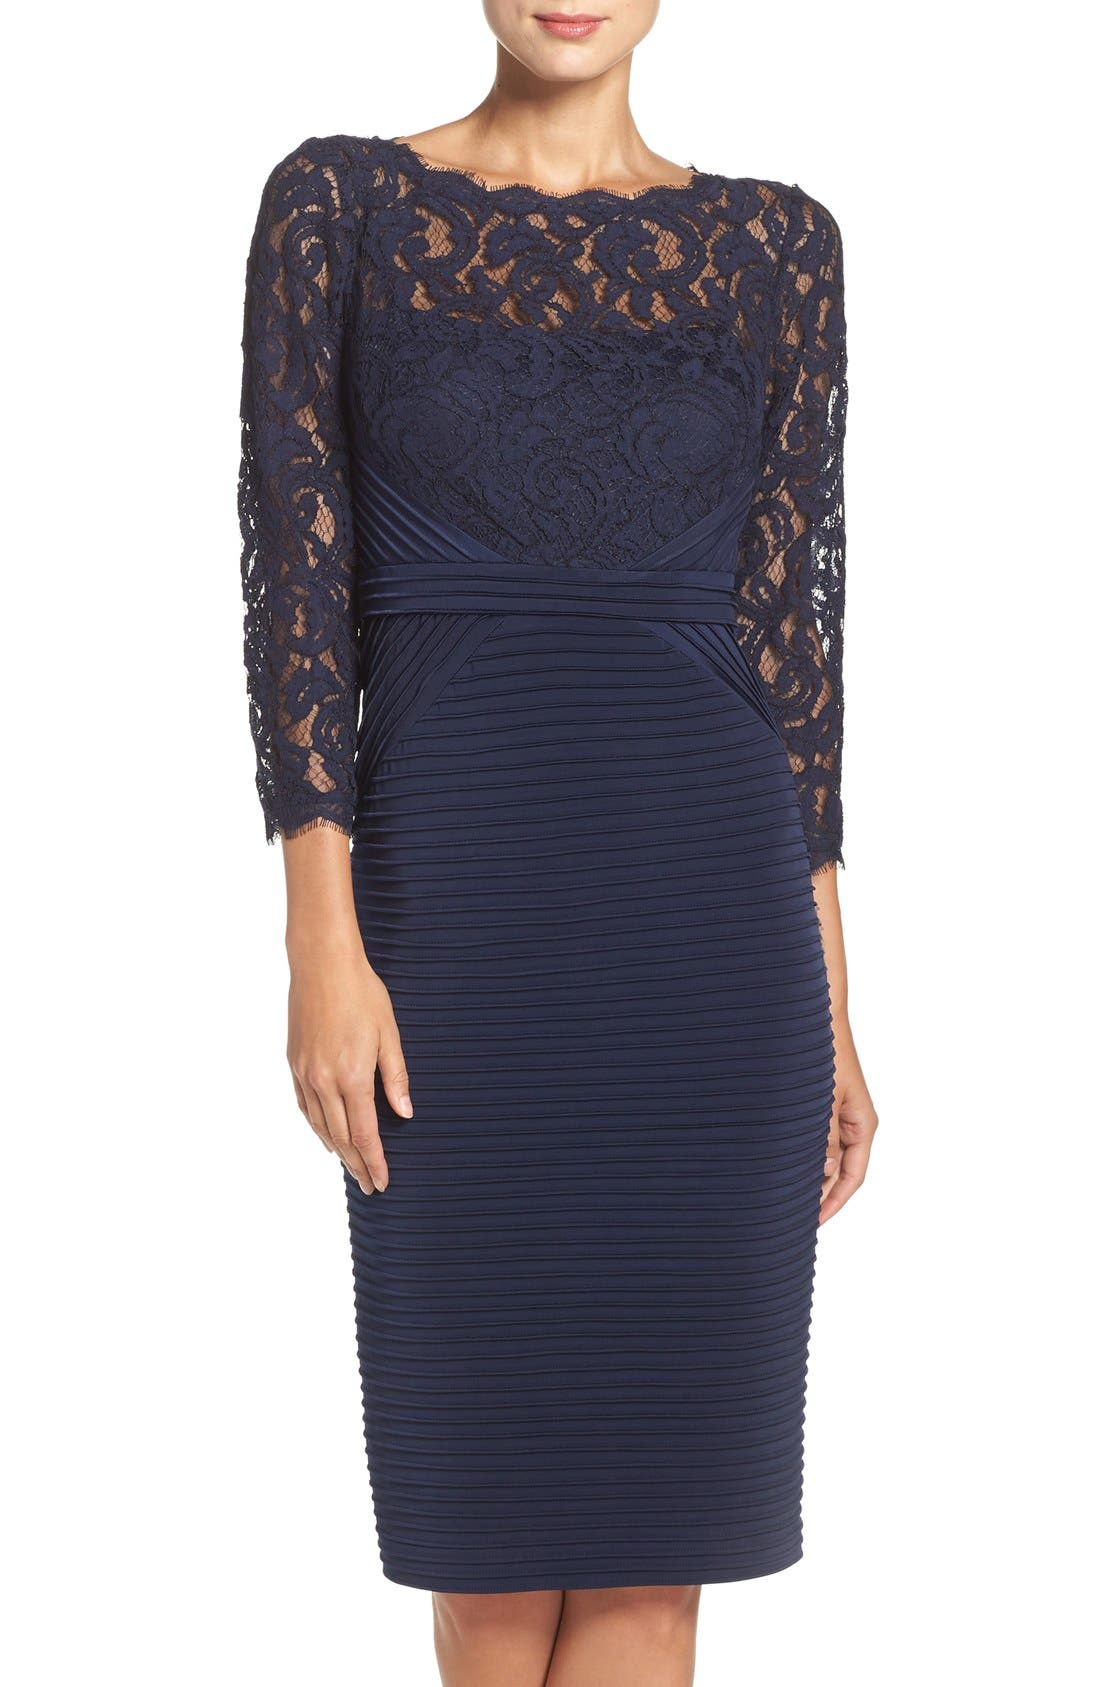 Alternate Image 1 Selected - Adrianna Papell Lace & Jersey Sheath Dress